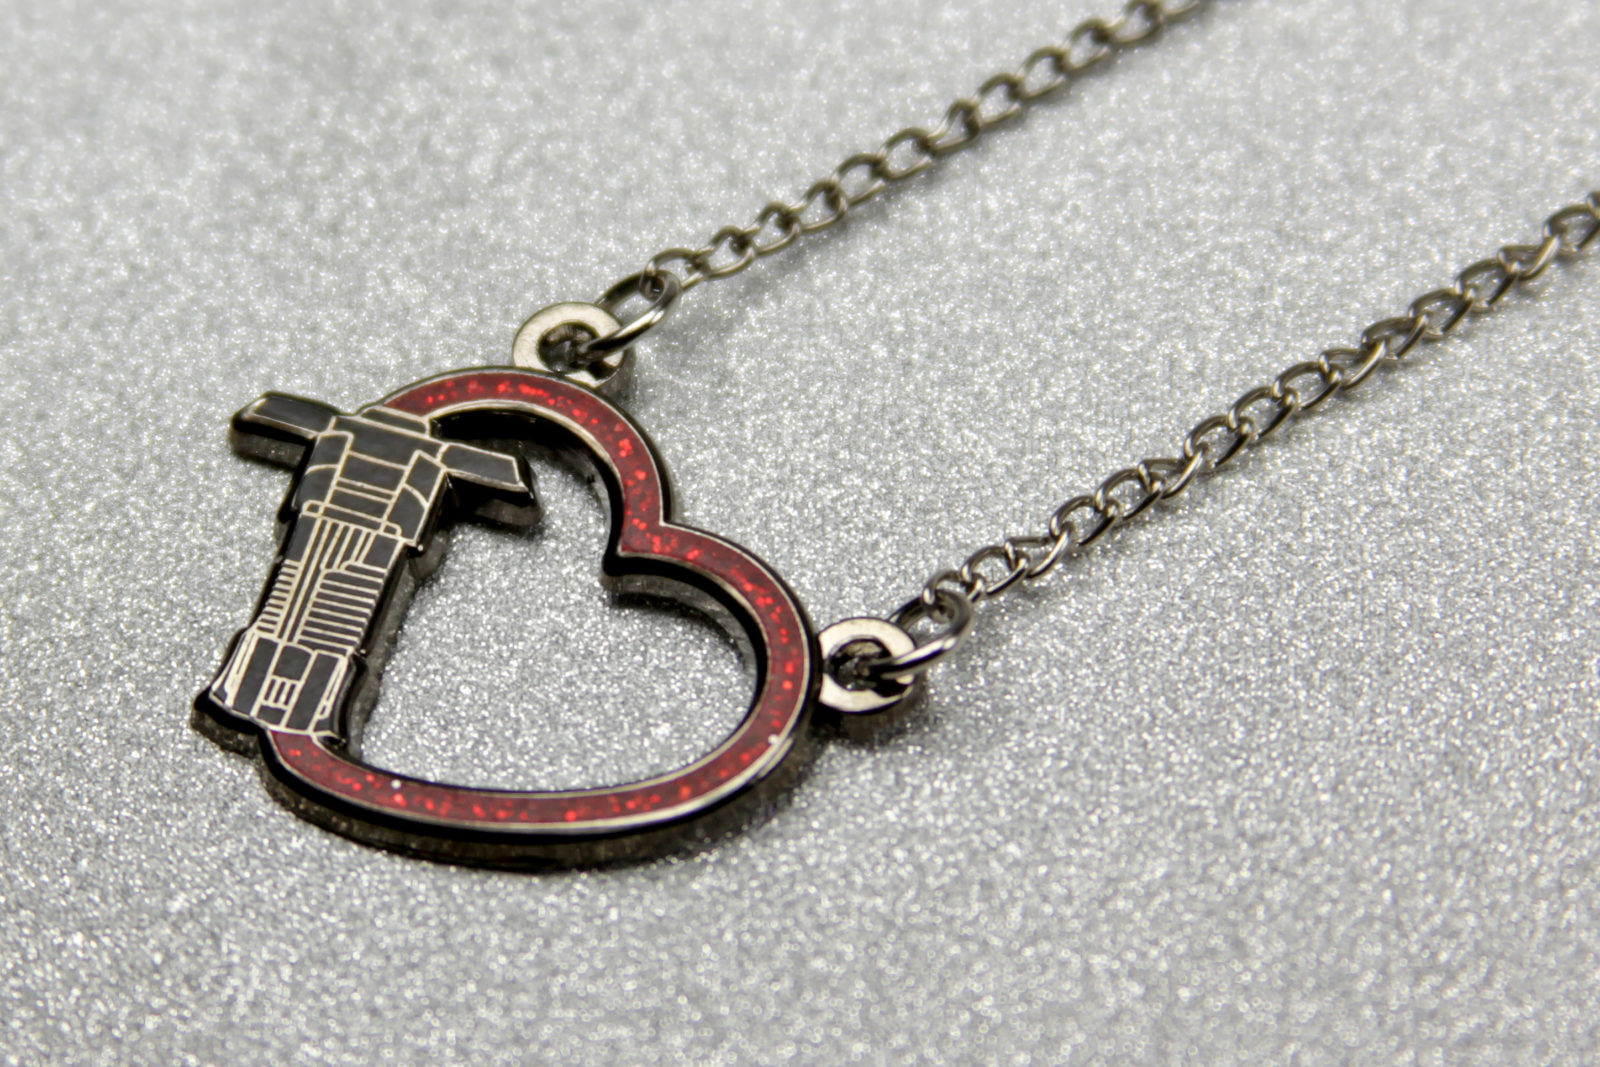 Review – Lantern Pins Kylo Ren Heart Necklace